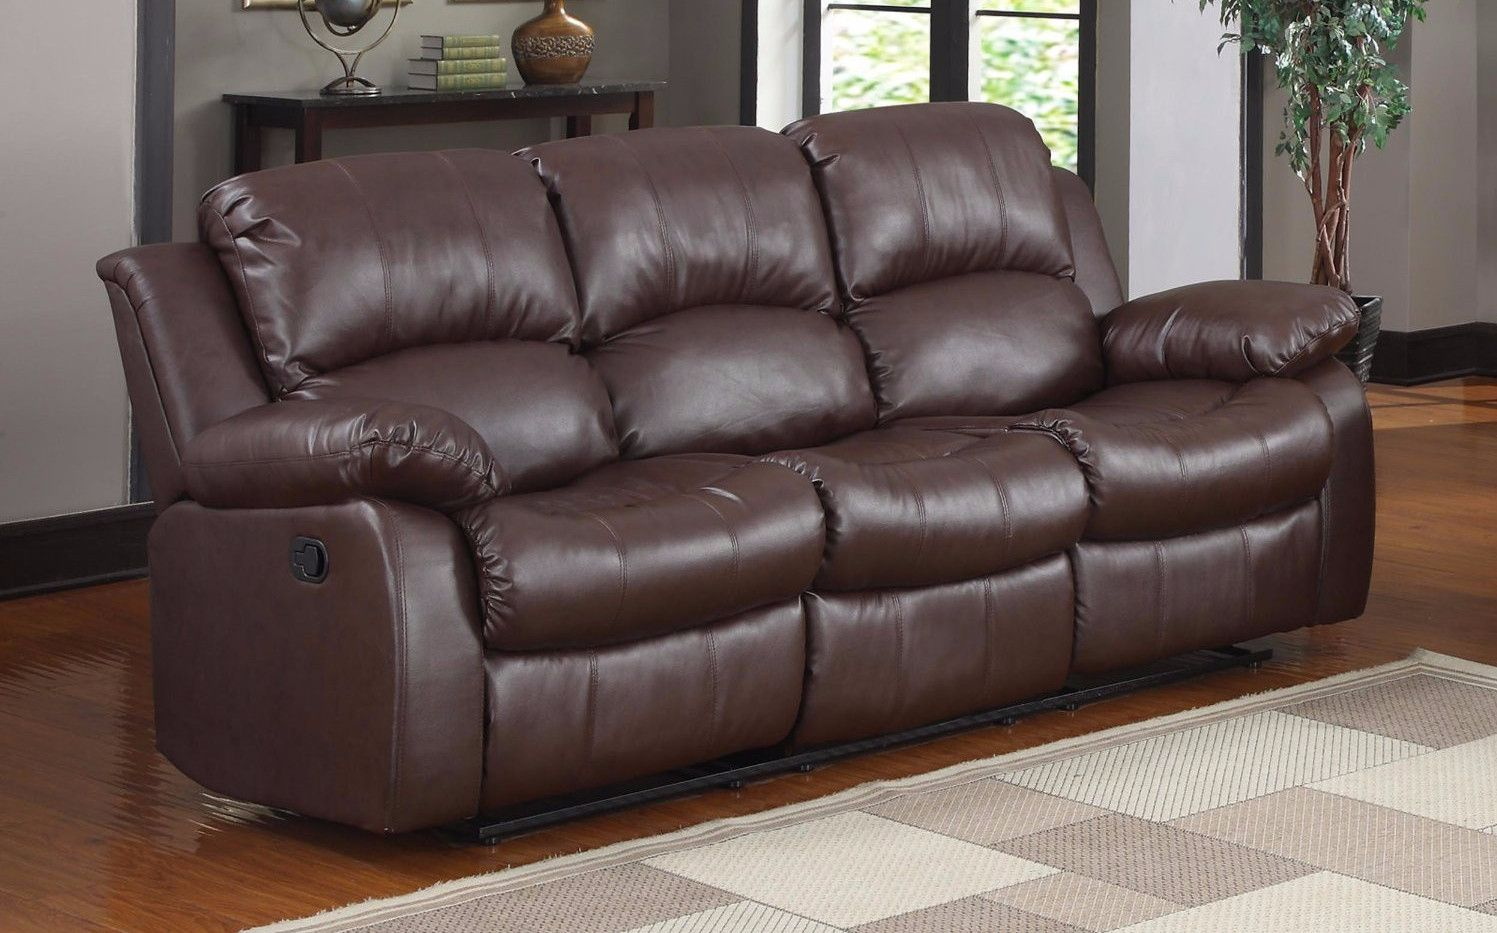 Oversize and overstuffed classic 3 seat bonded leather double recliner sofa brown